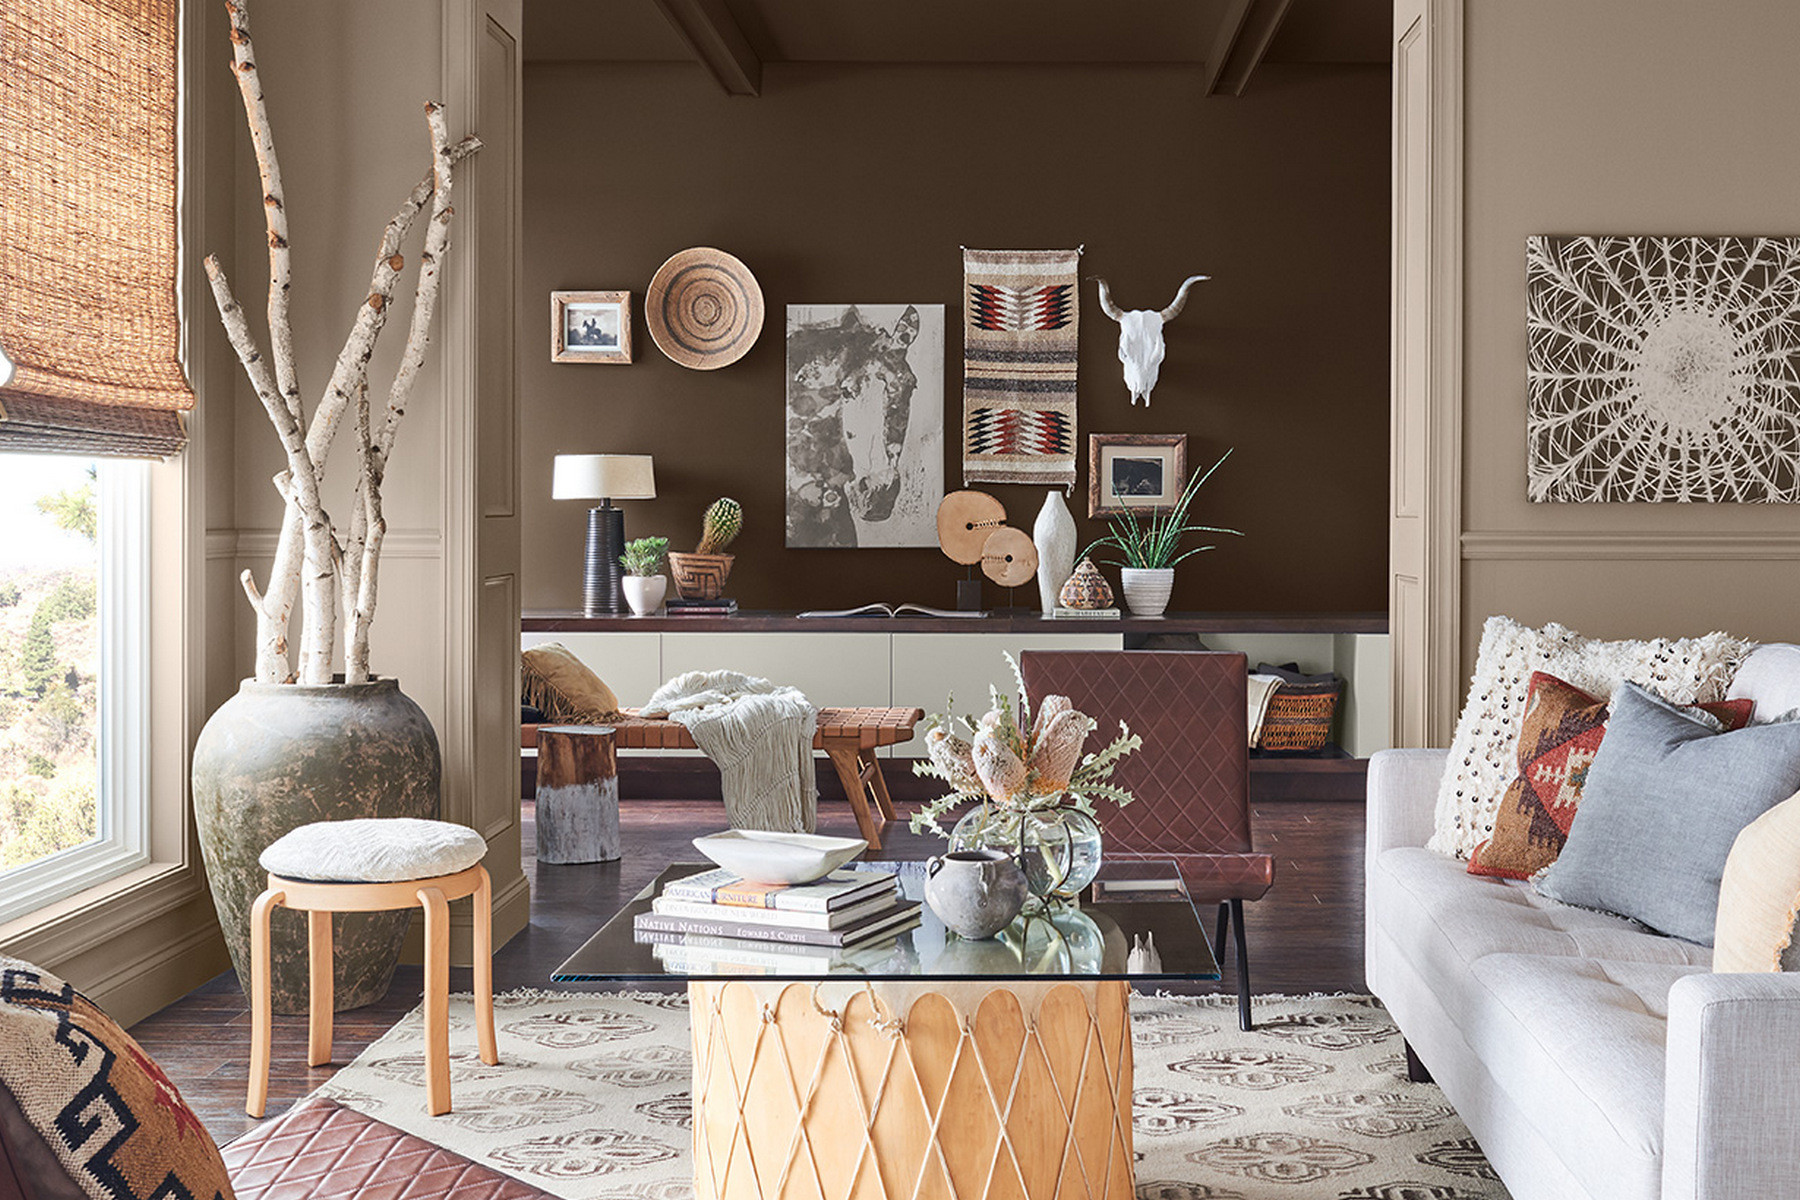 17 Living Room Paint Colors That Will Delight The Eye